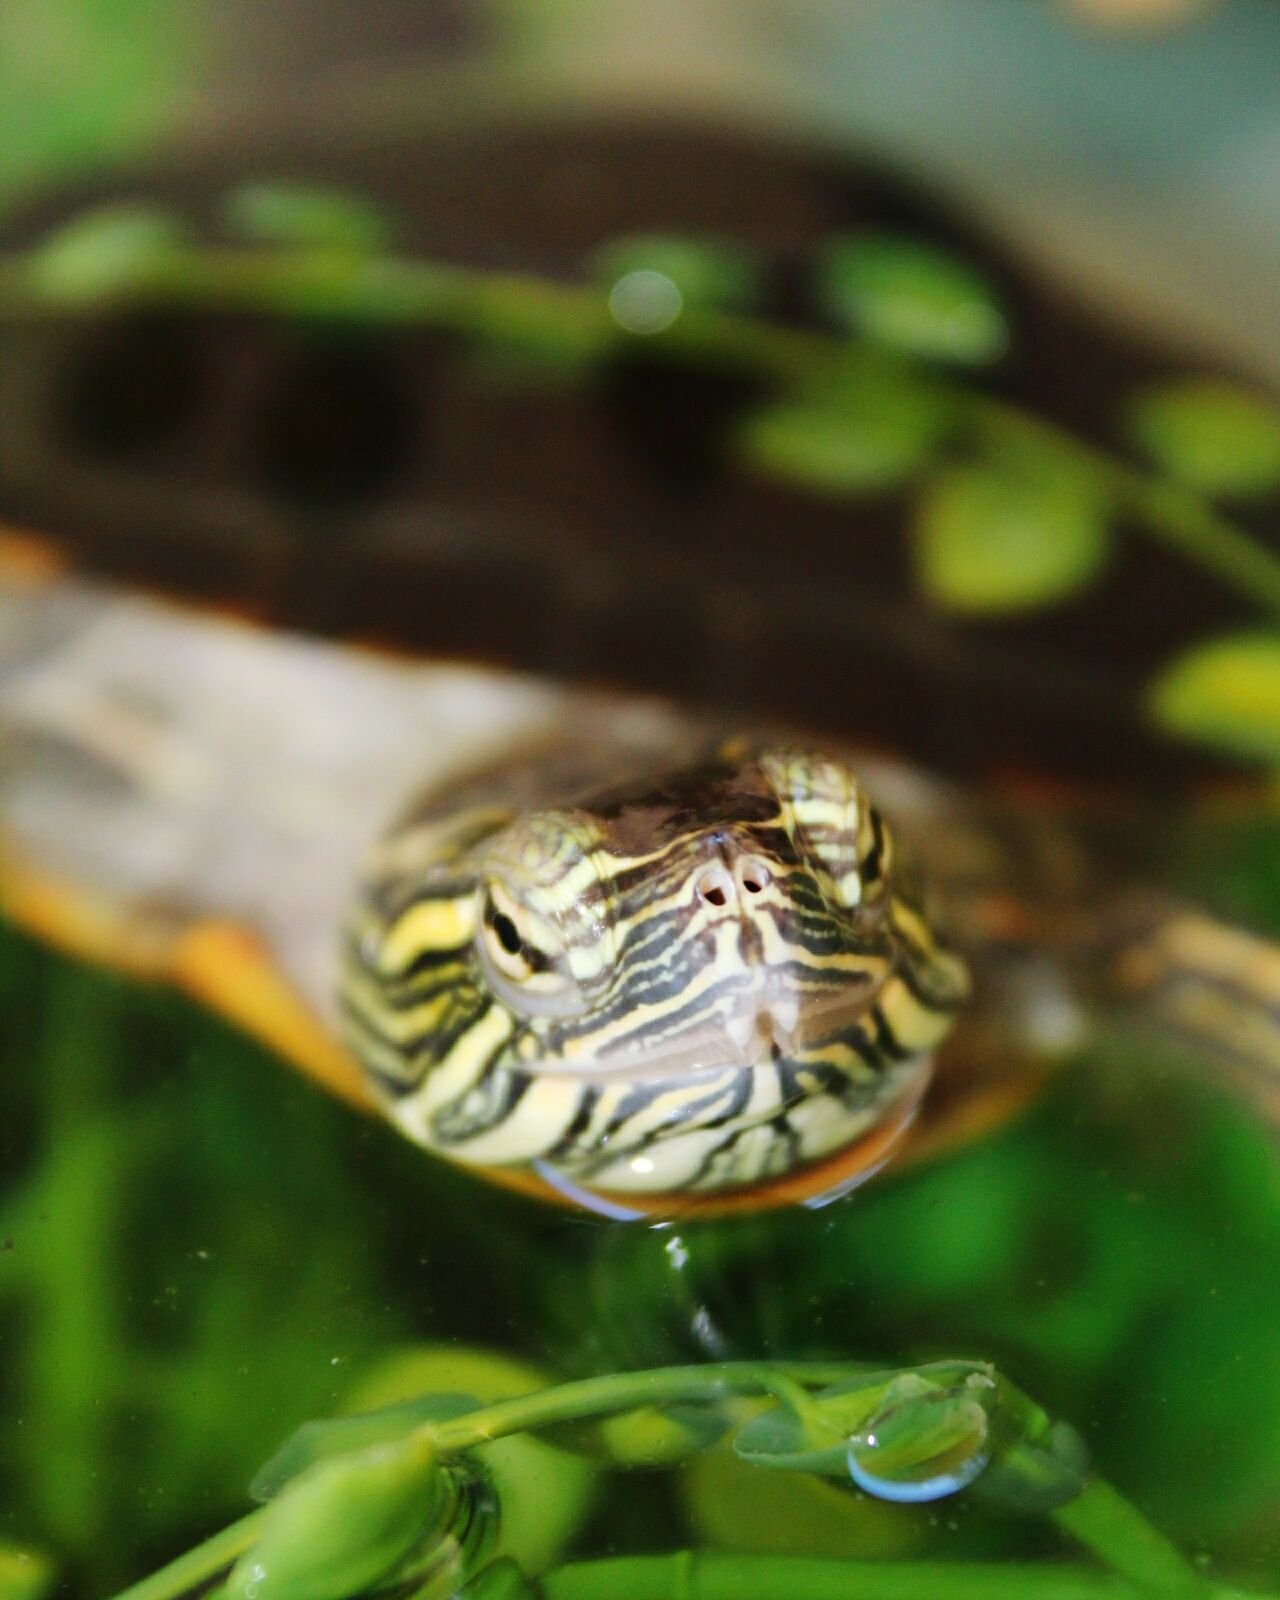 Nich the Western painted turtle 🐢❤ Canon Canon Rebel T6 Water Nature Outdoors Close-up Turtle Western Painted Turtle Painted Turtle Basking Turtle Animals No People California San Diego Beauty In Nature Photography Reptile Wheress0cal Swimming Animal Themes Reptile Photography Reptile World